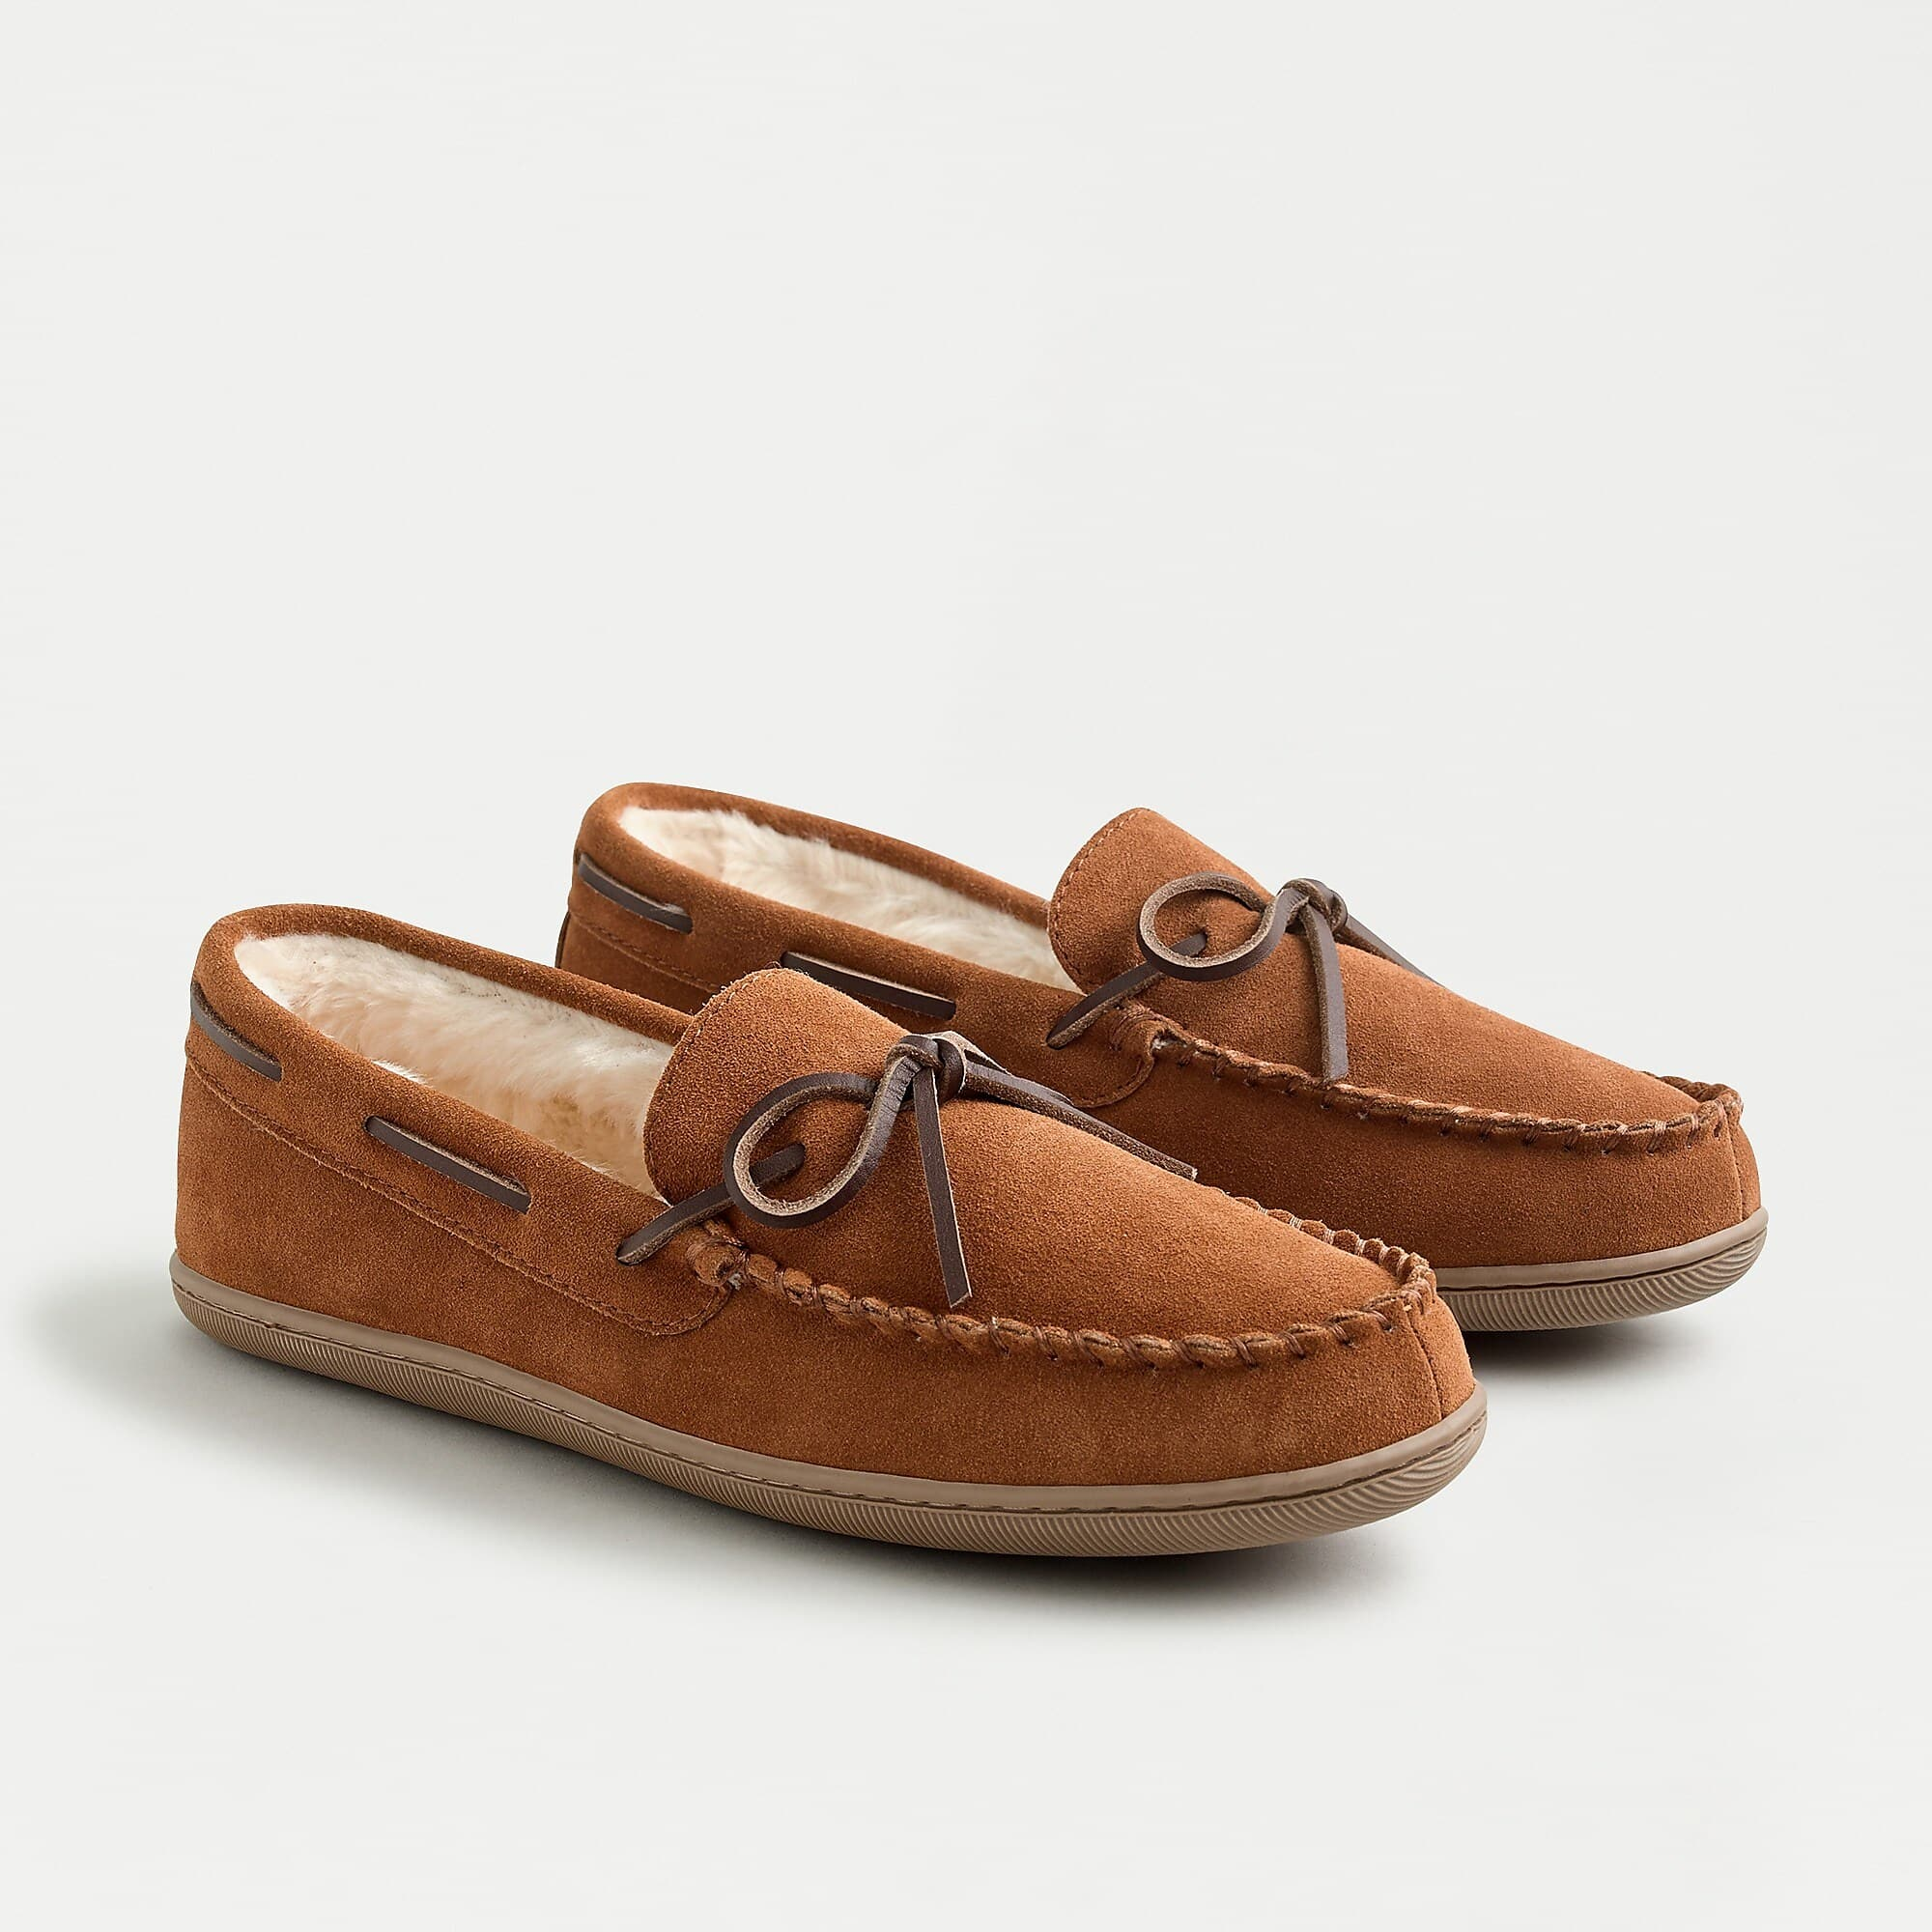 Classic suede moccasin slippers (J. Crew) $16.66